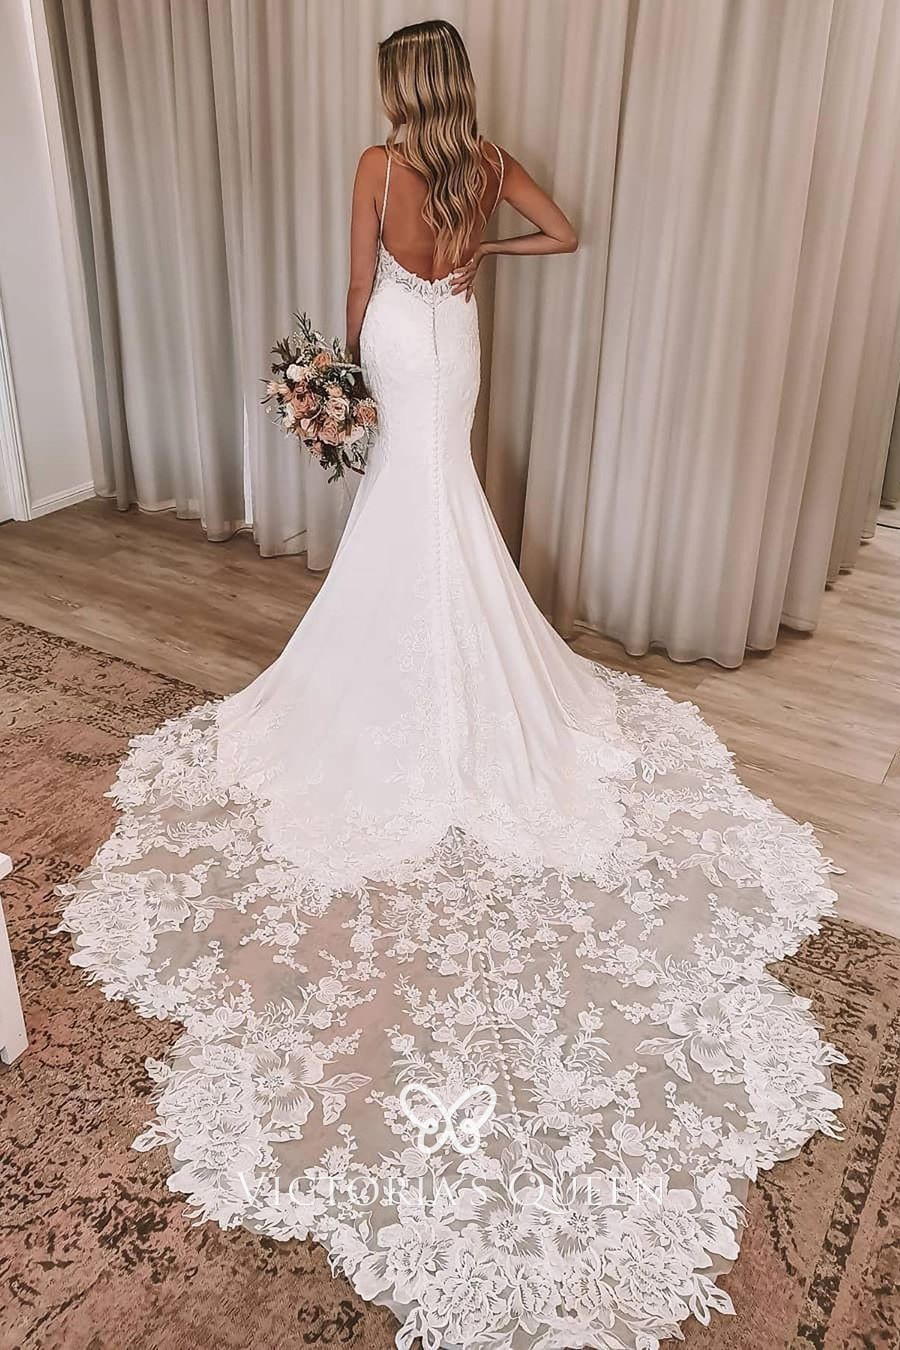 Low Back Floral Lace Chapel Train Mermaid Wedding Dress Vq,Cowboy Boots And Wedding Dress